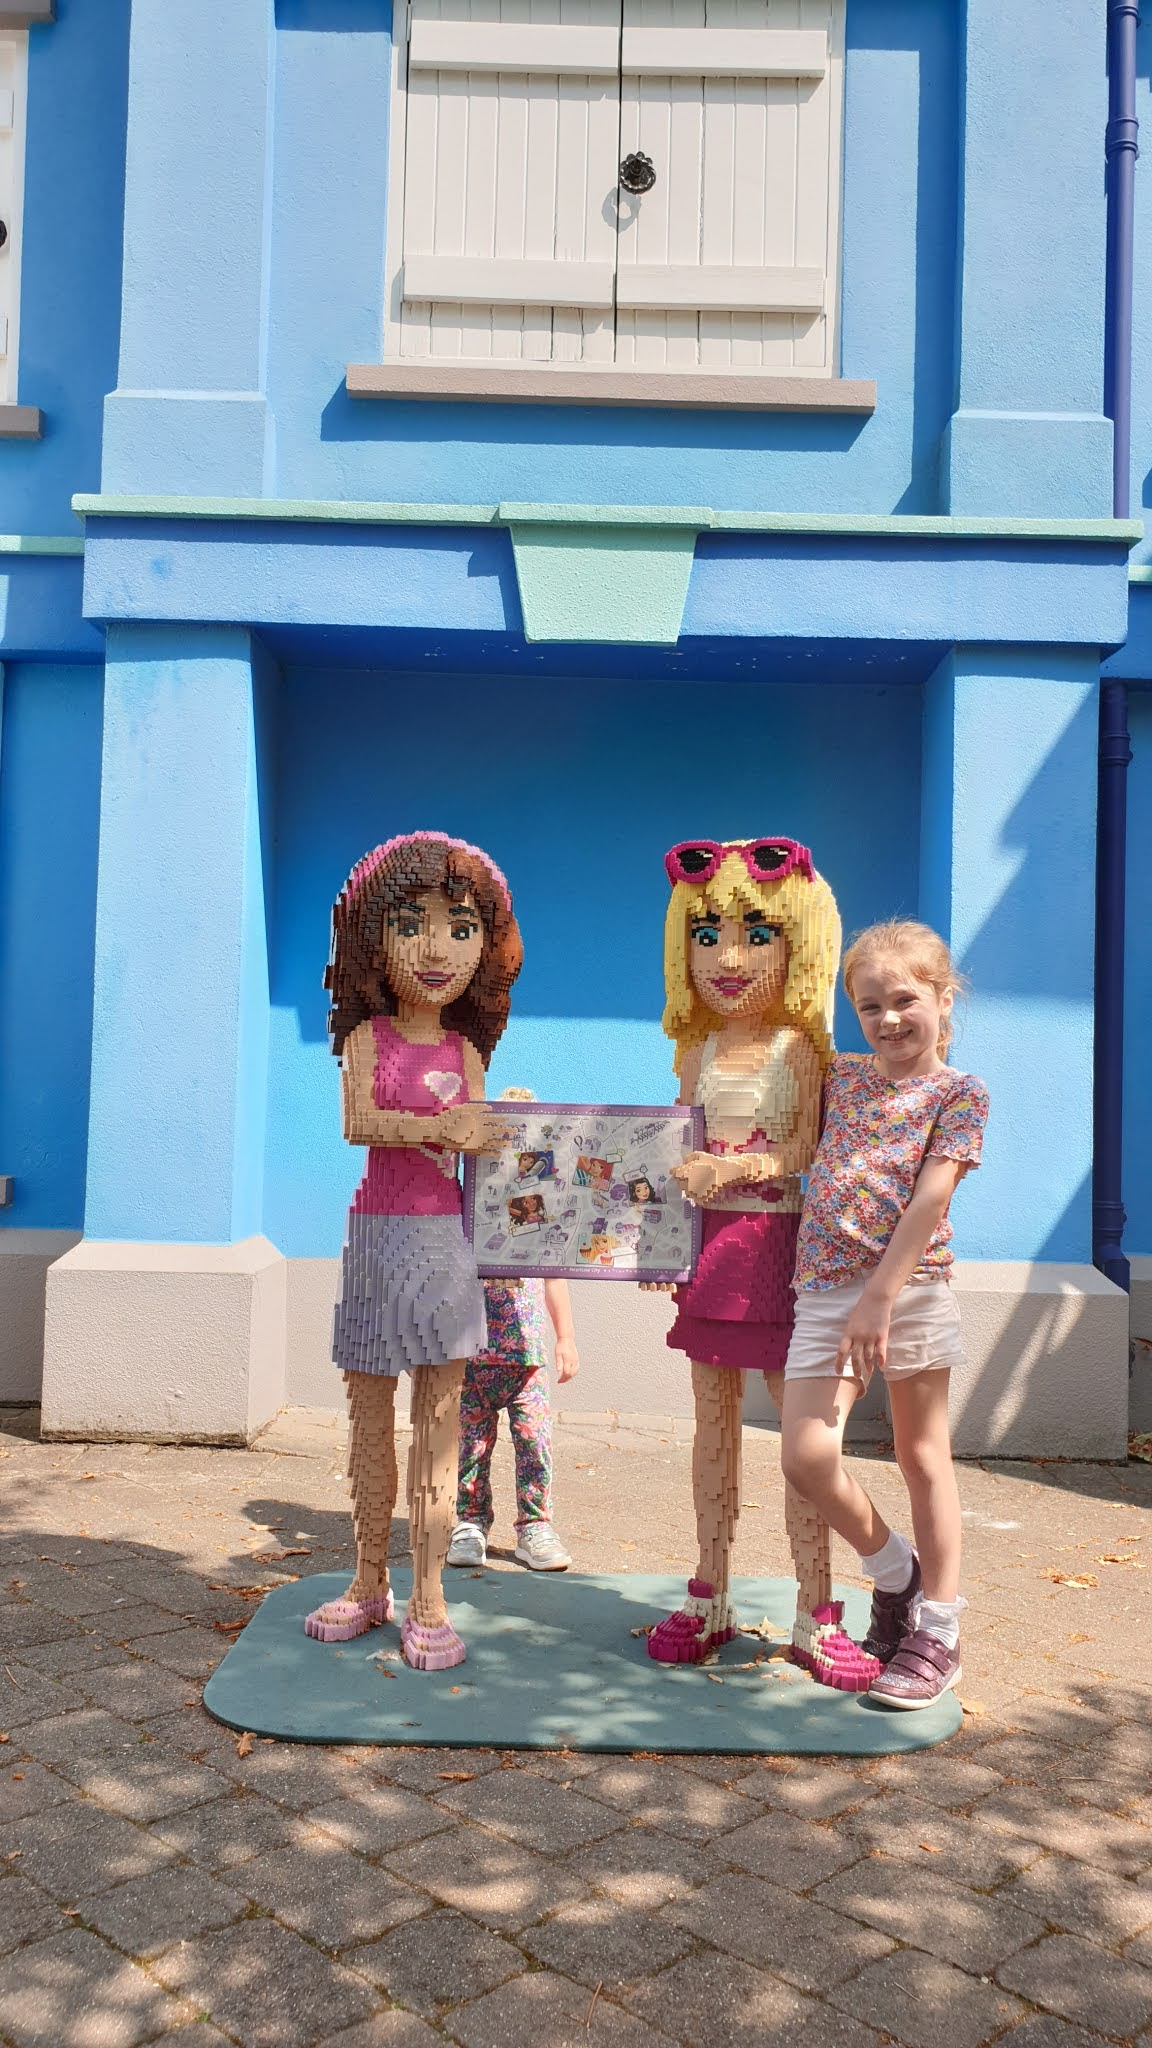 kids with lego friends sculptures